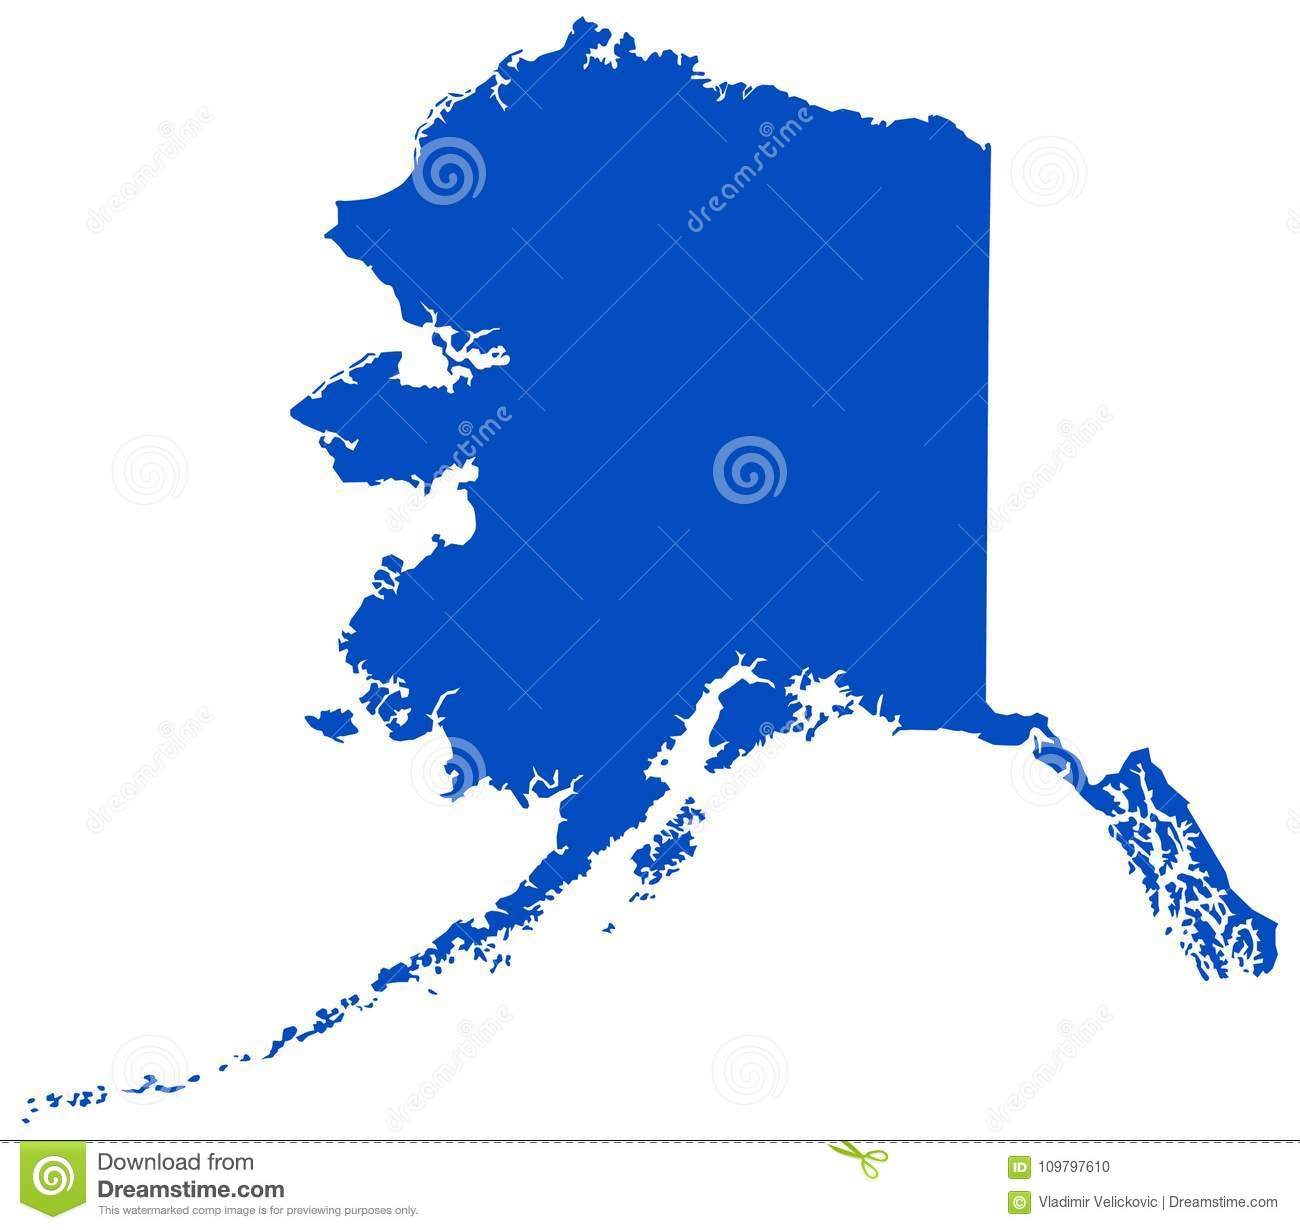 Alaska Map - State Of The United States Stock Vector ...